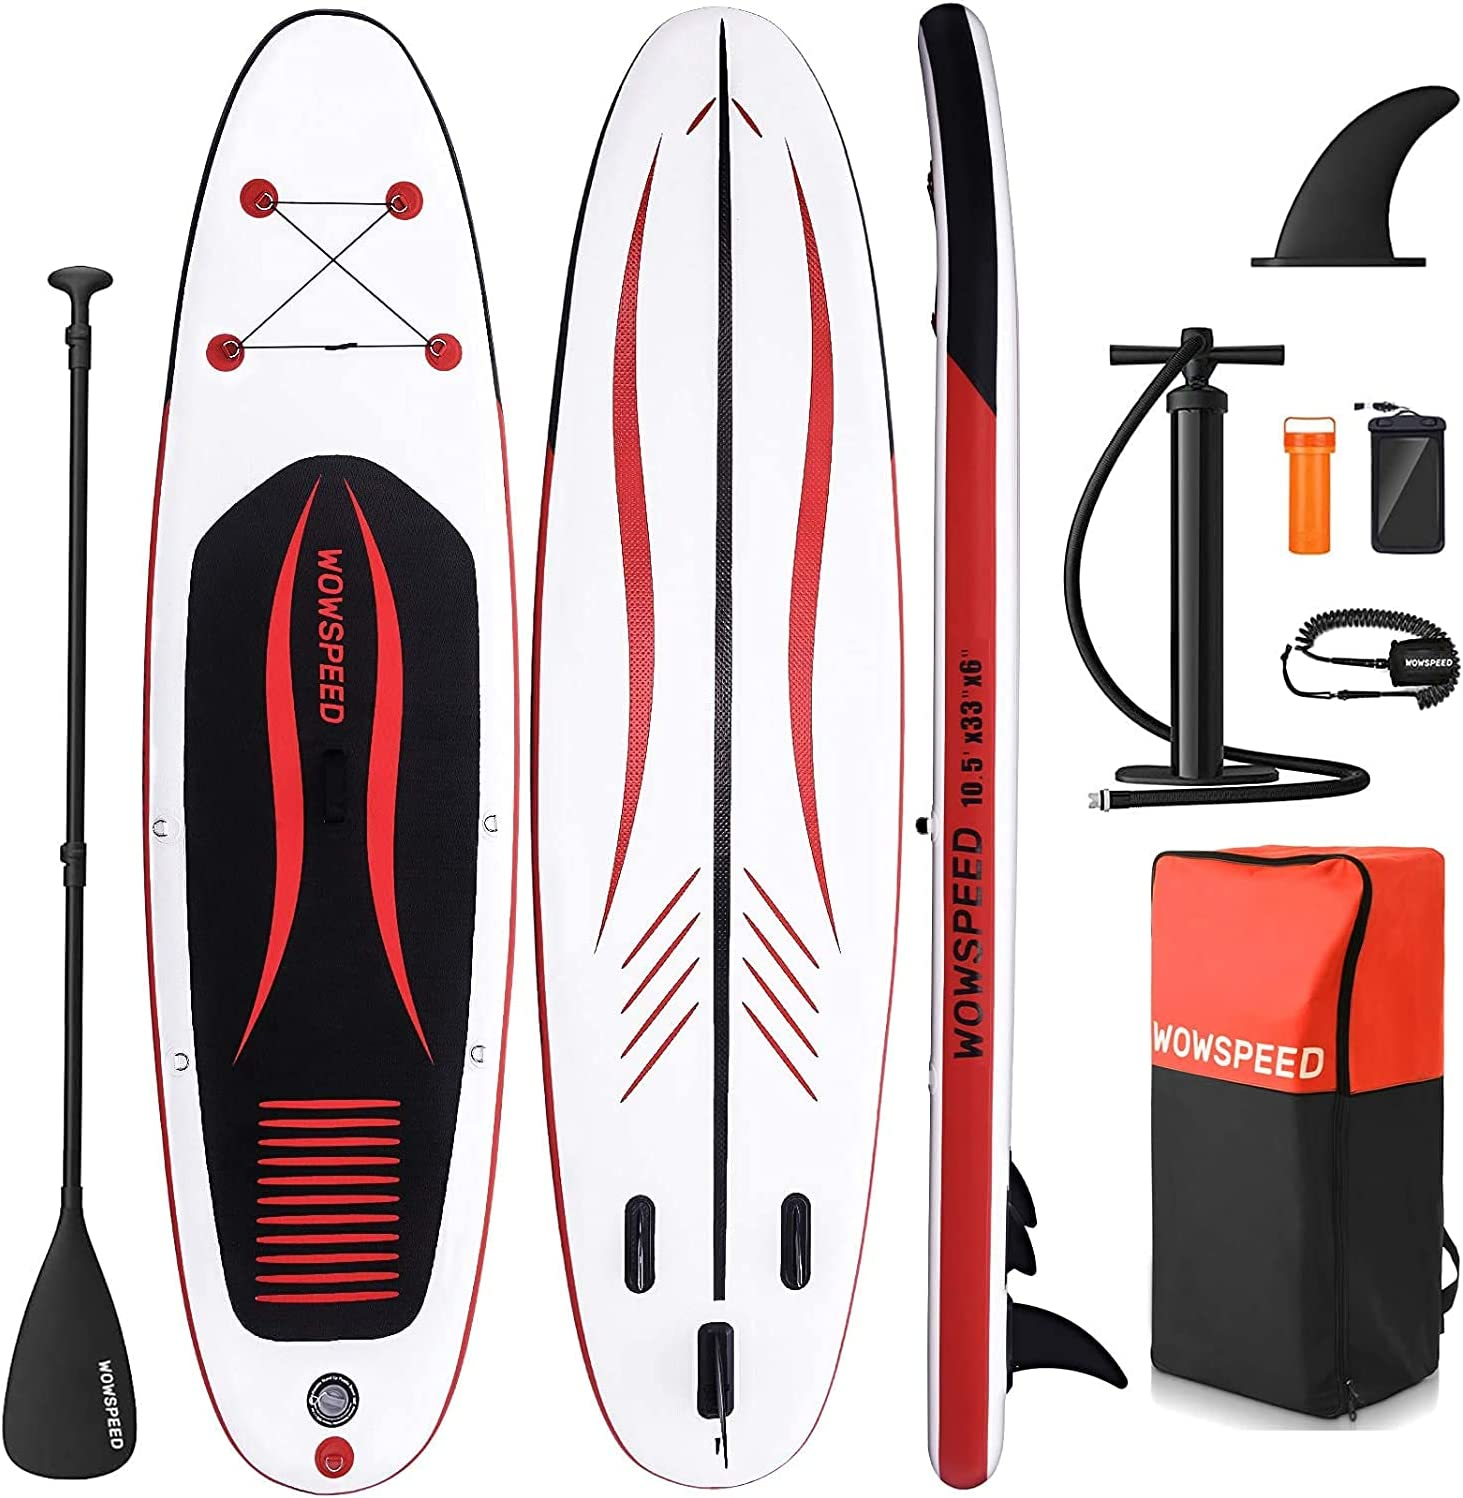 Paddle security Board Inflatable st 10'5×33